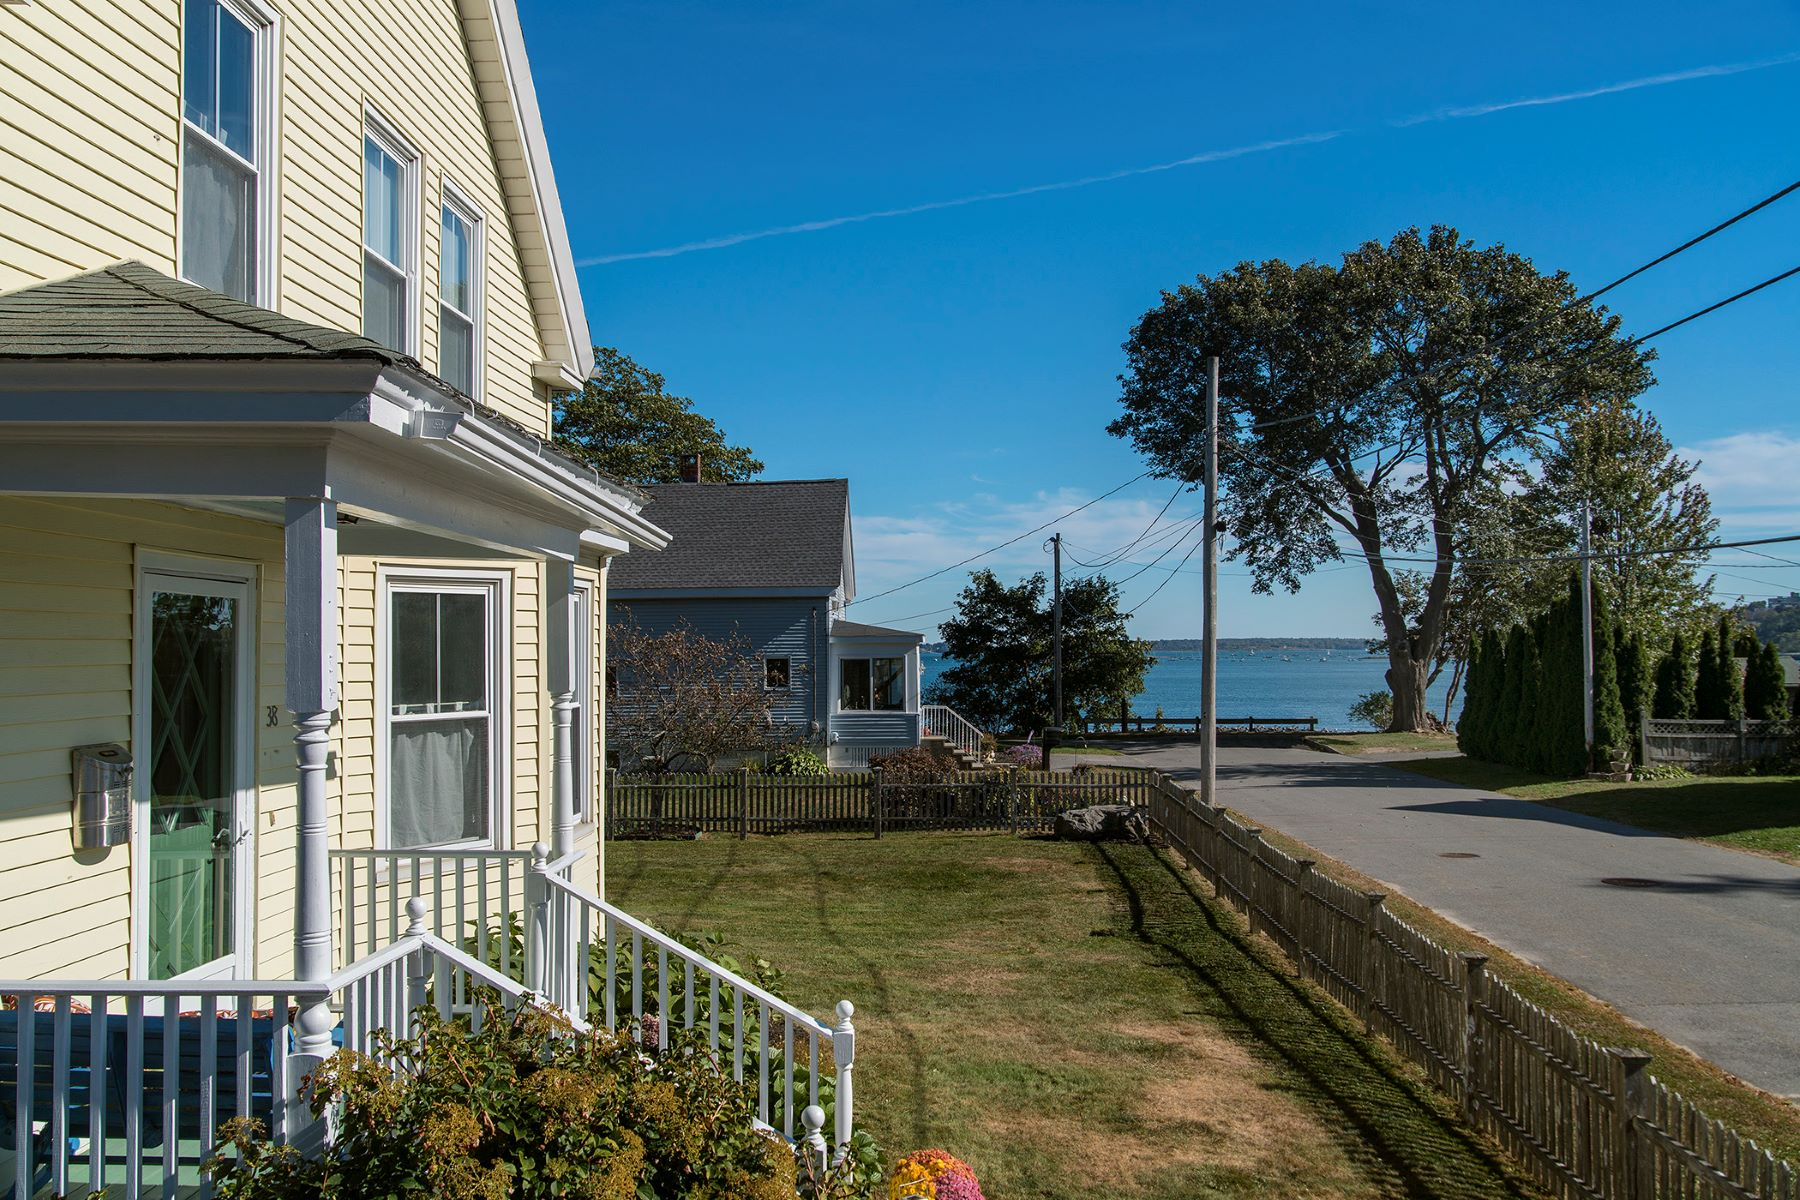 Single Family Home for Sale at 38 Berwick Street 38 Berwick Street Portland, Maine 04103 United States